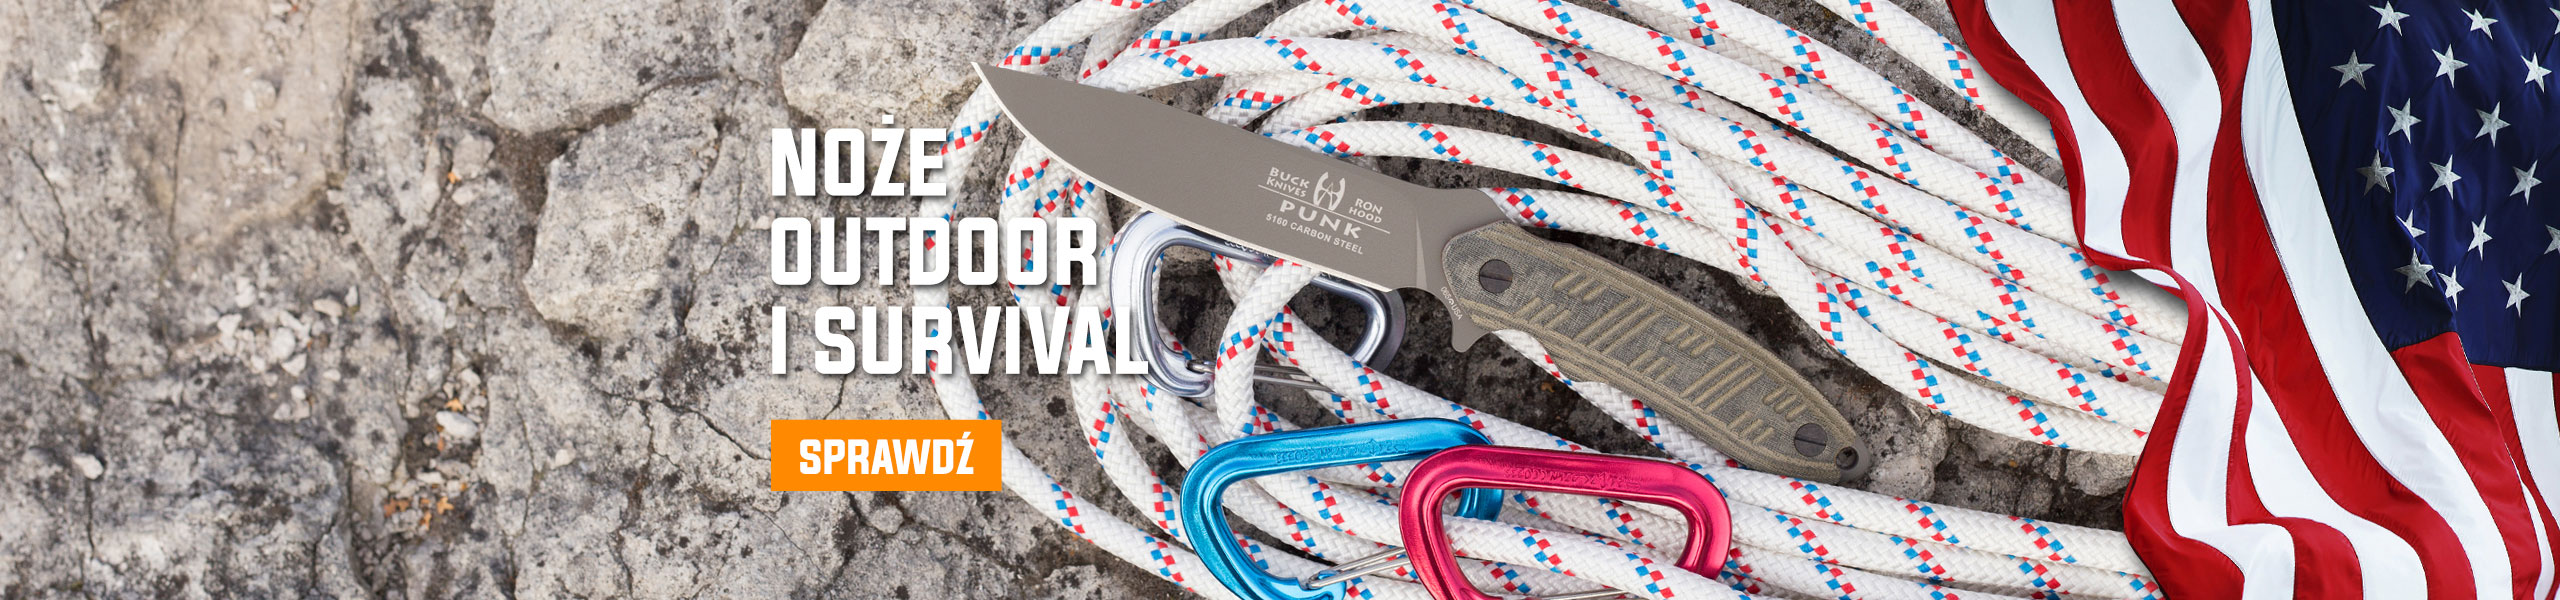 2872315BUCK_OUTDOOR_SURVIVAL_a